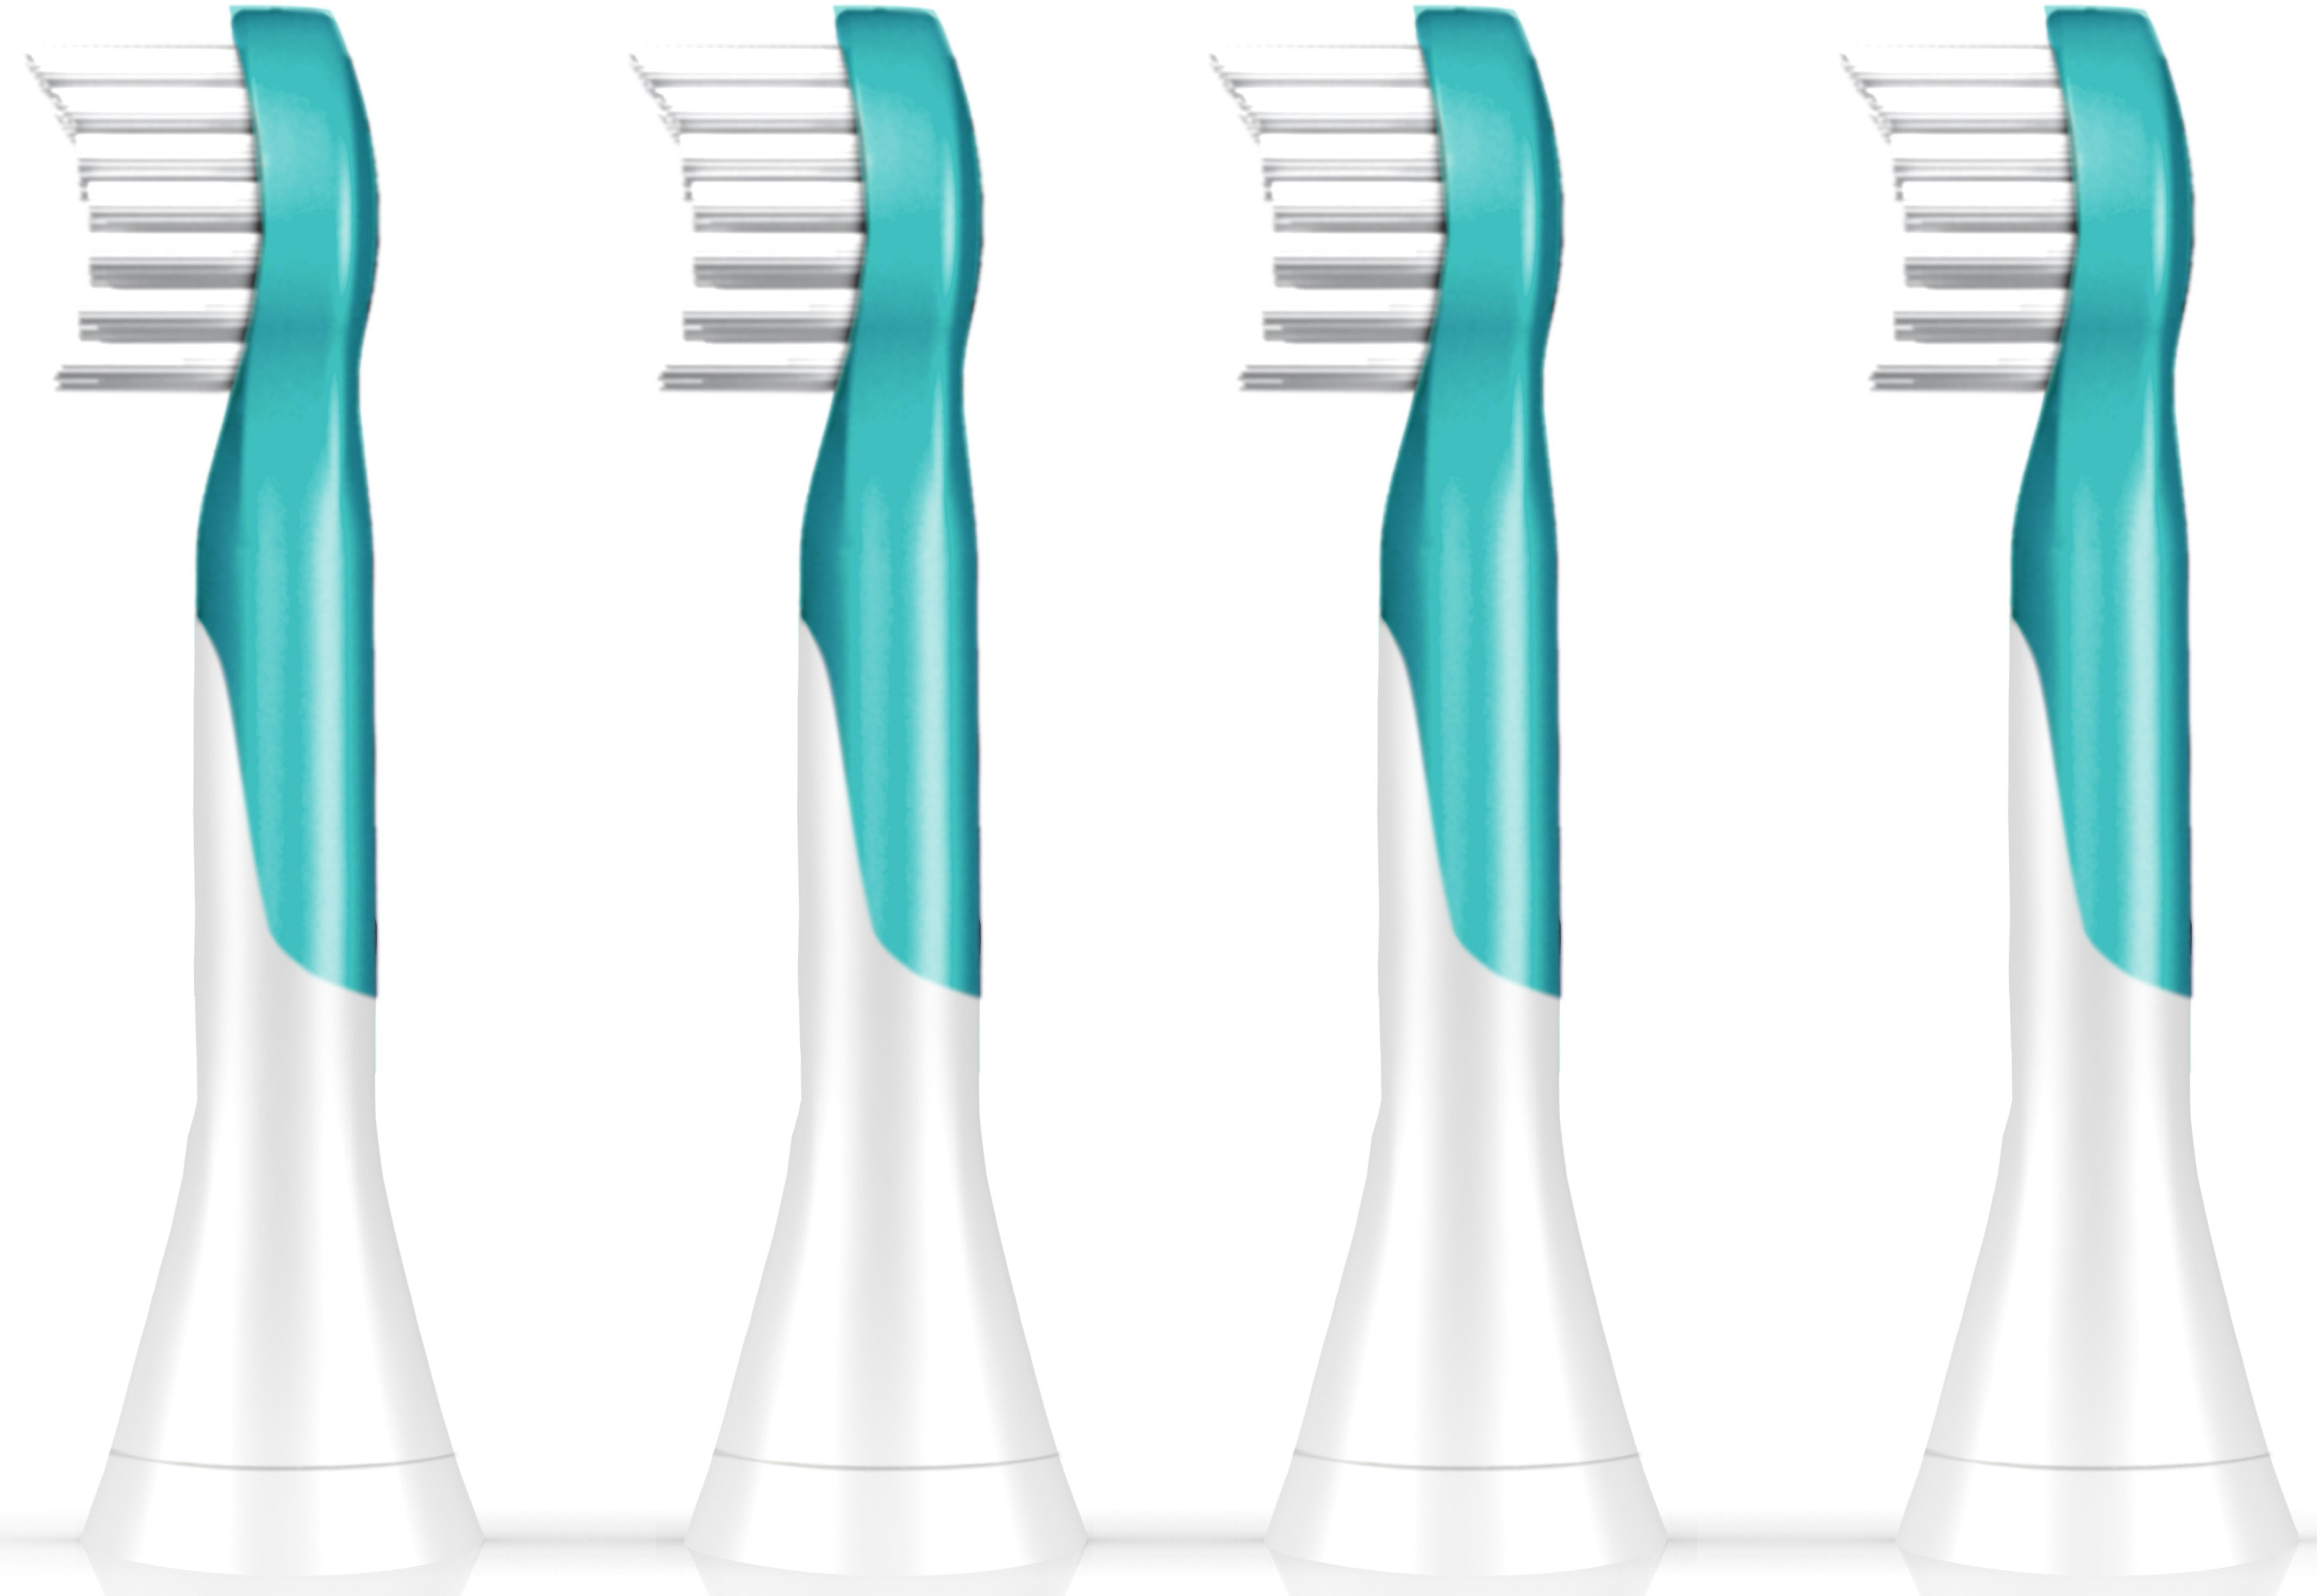 Philips Sonicare Ersatzbürsten HX6034/33 Sonicare For Kids, 4er Pack